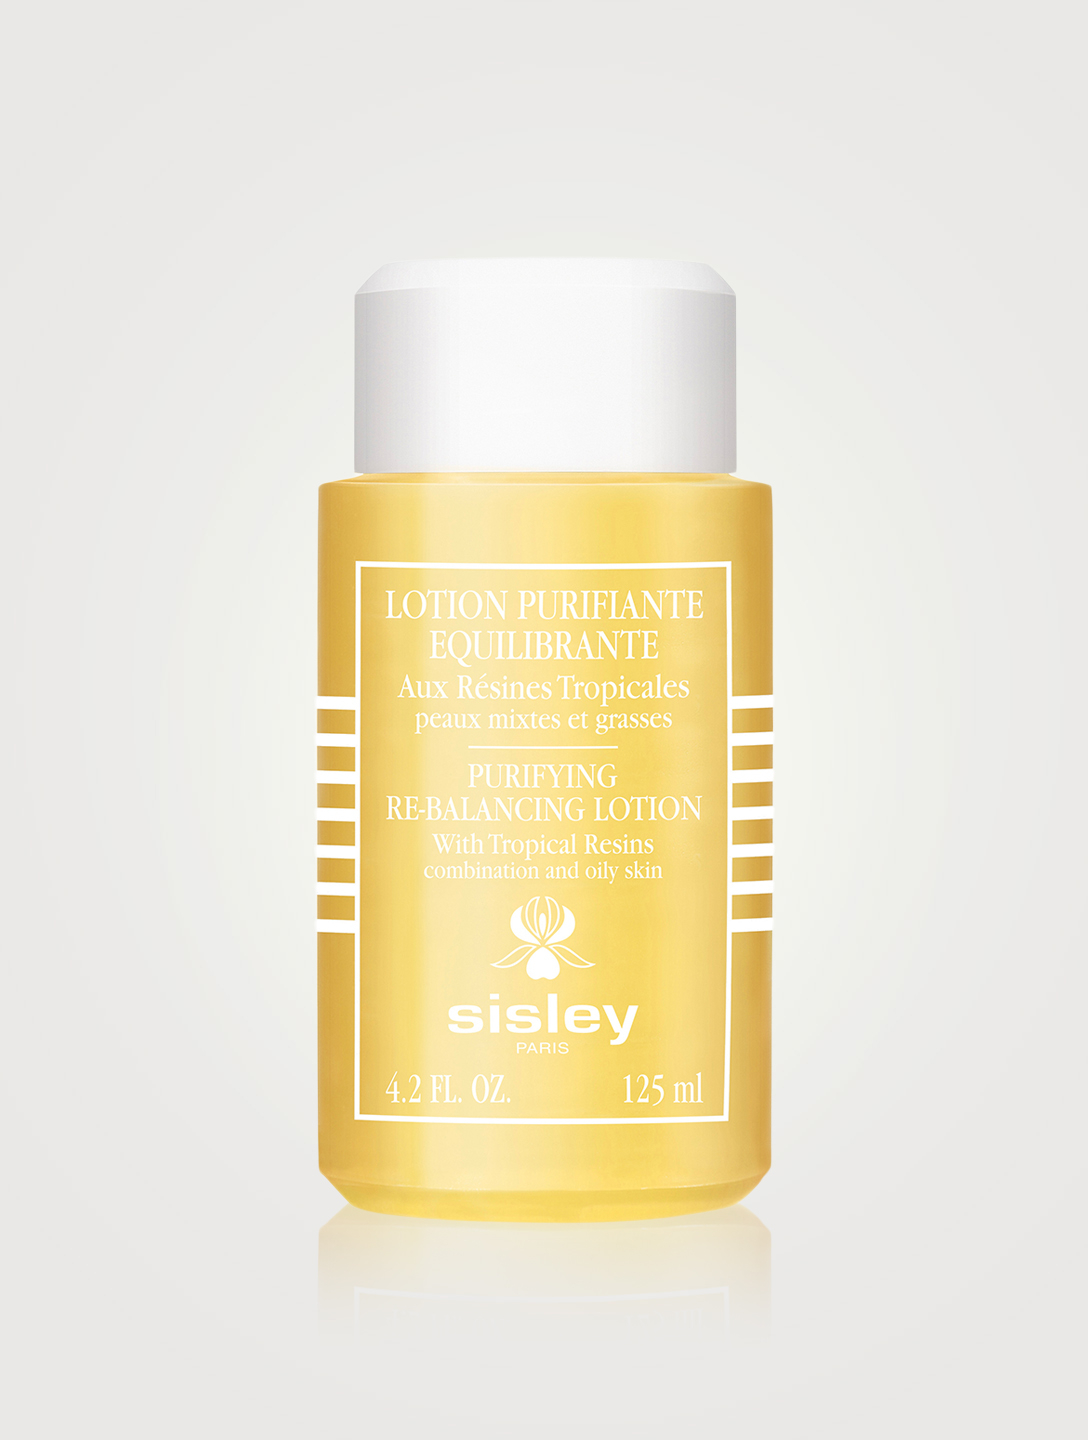 SISLEY-PARIS Purifying Re-Balancing Lotion With Tropical Resins Beauty